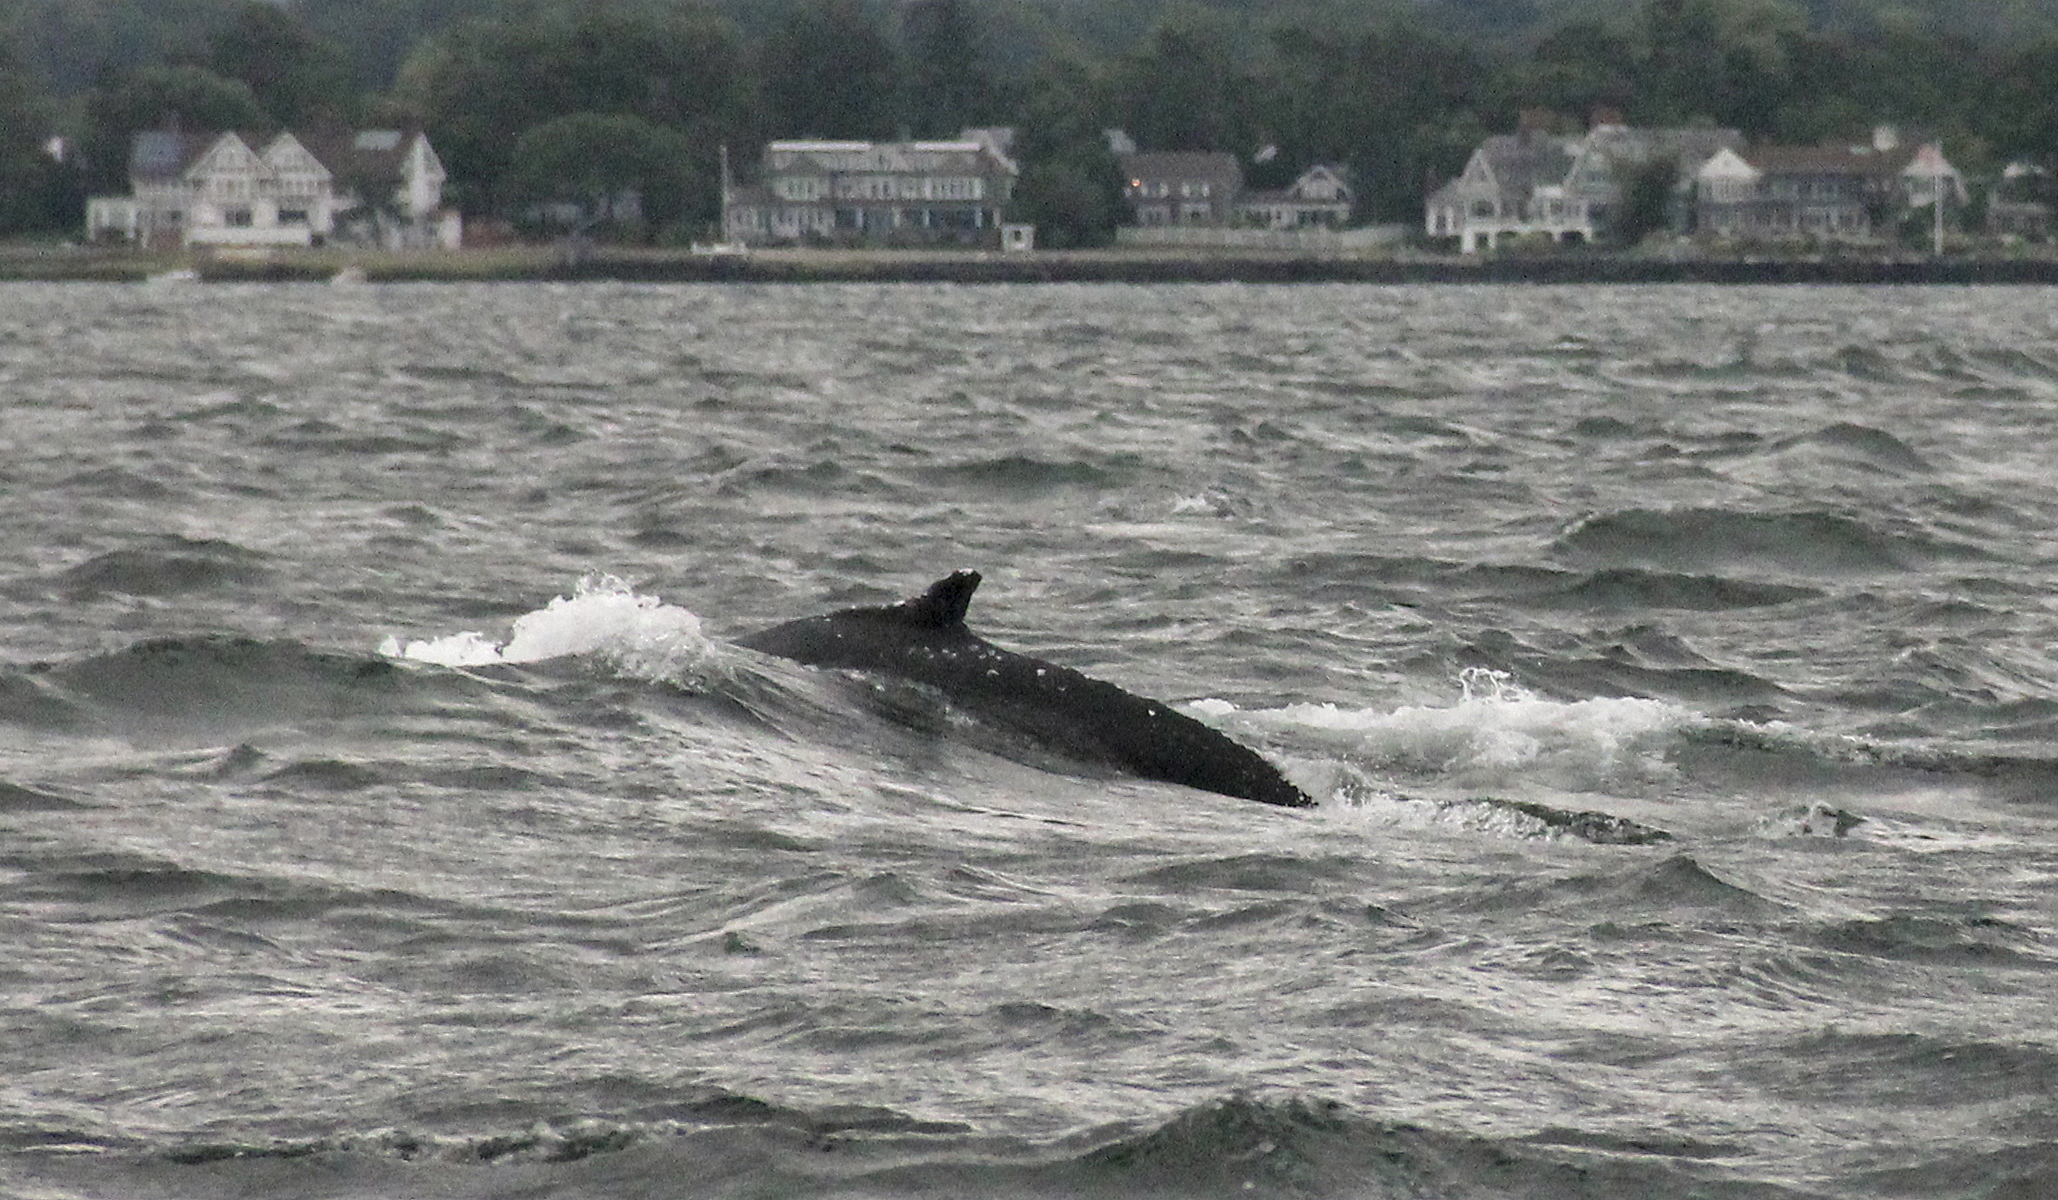 whales return to long island sound after twodecade hiatus